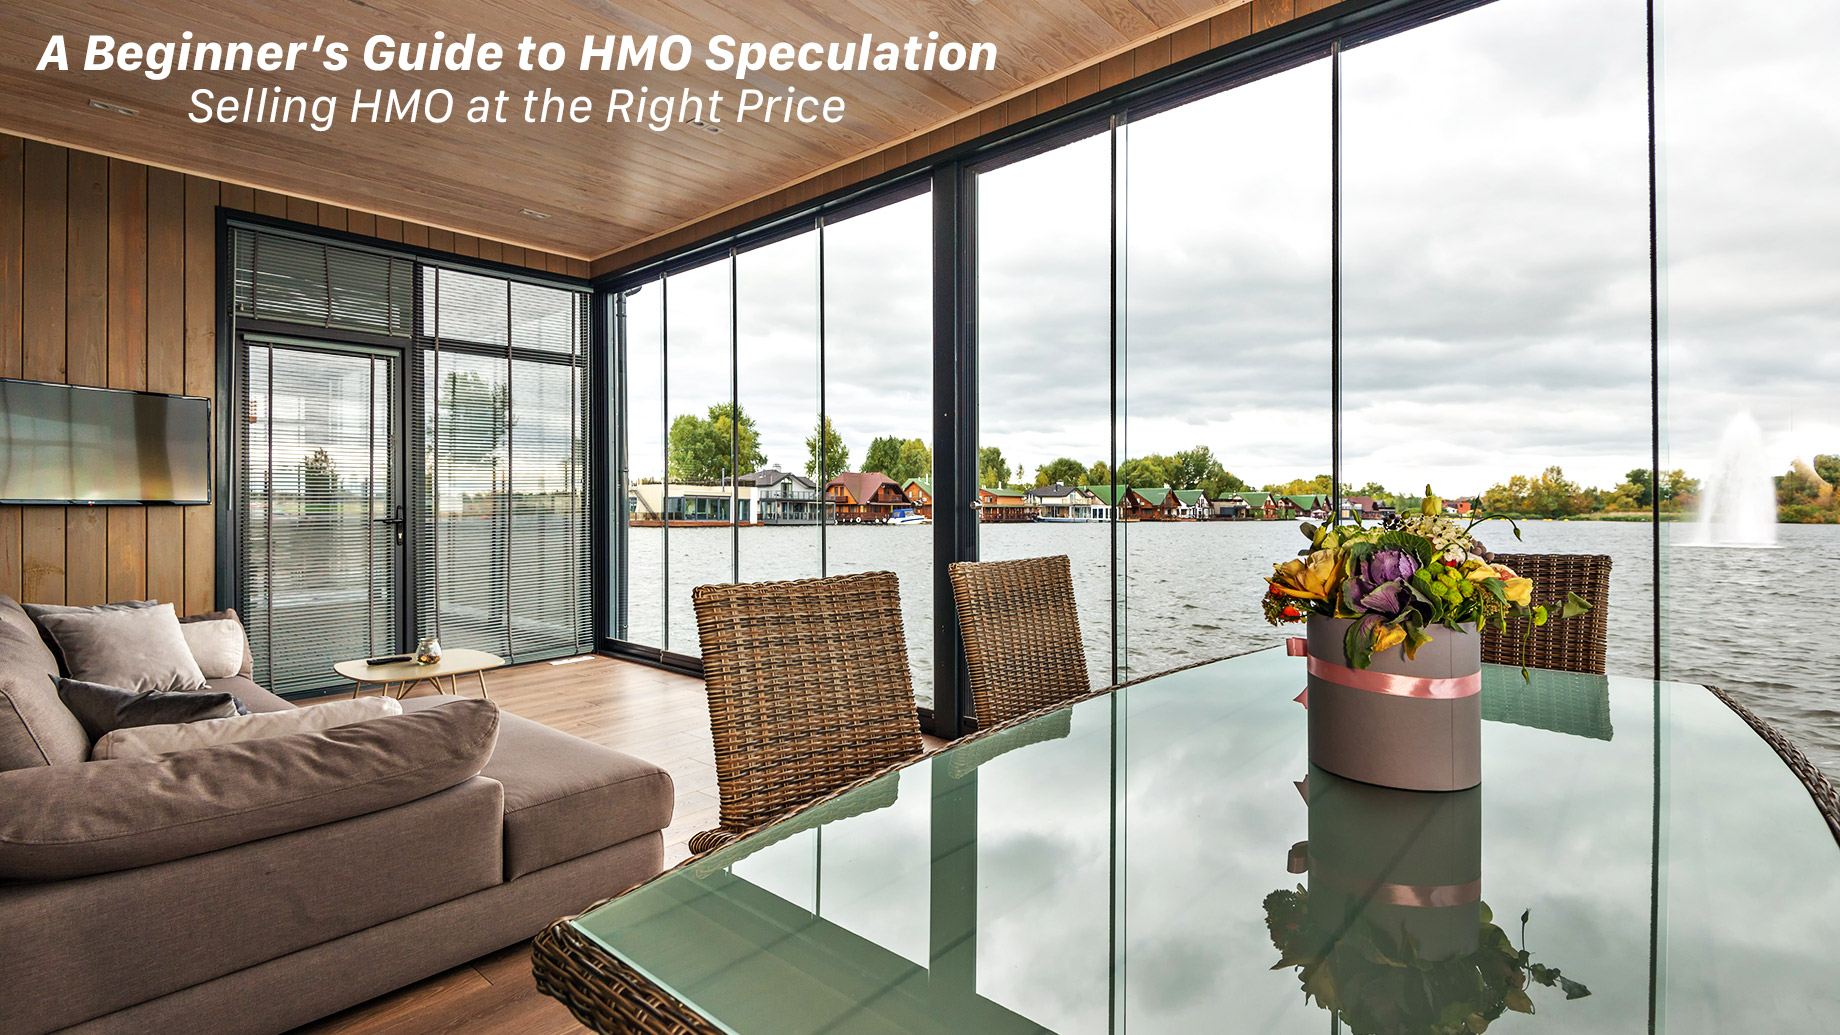 A Beginner's Guide to HMO Speculation - Selling HMO at the Right Price